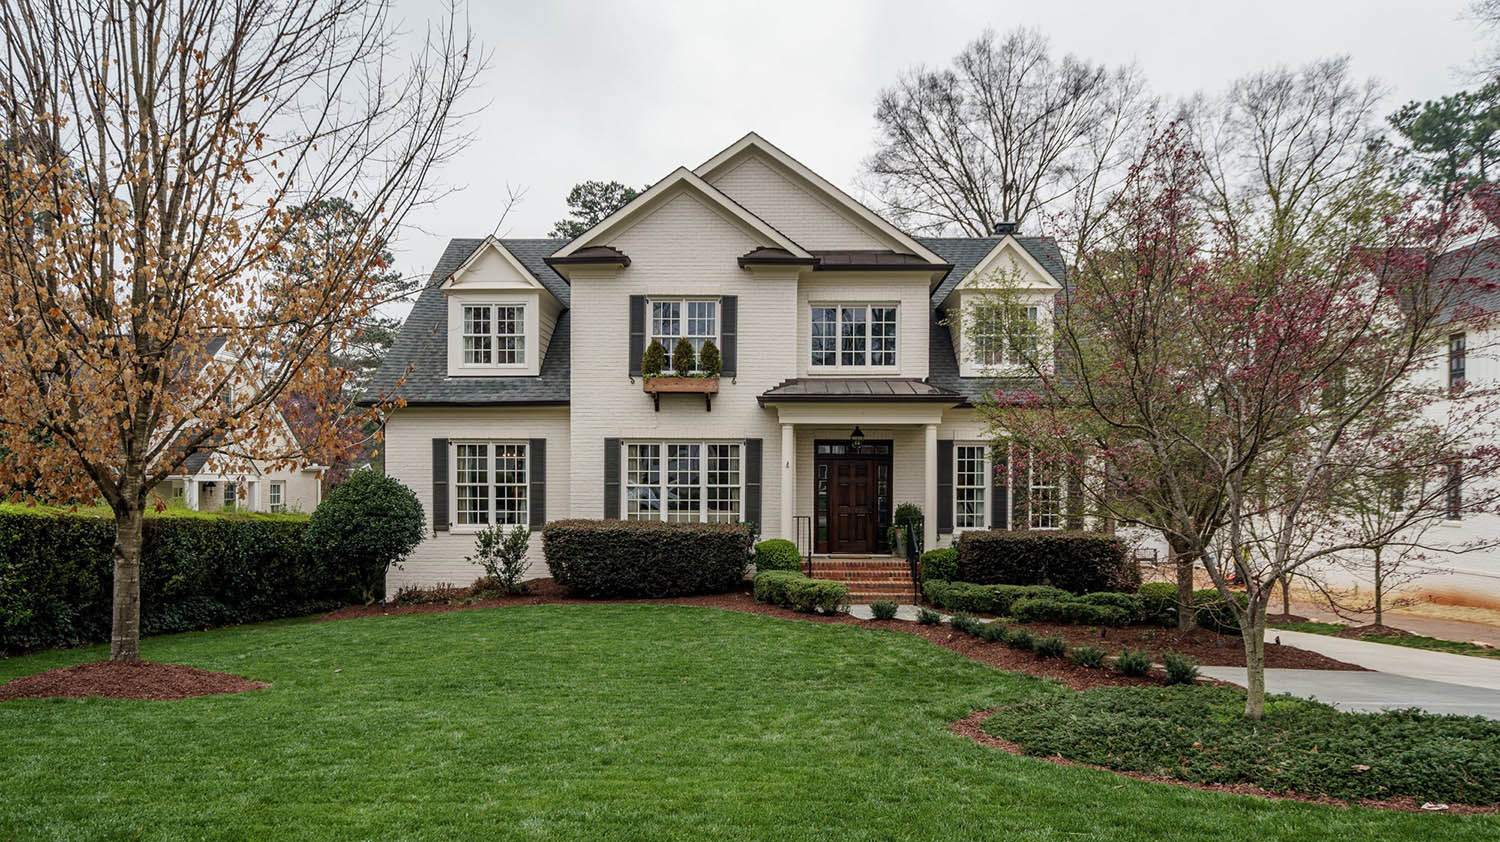 painted white brick house with red brick front steps, black shutters, roofing and railings